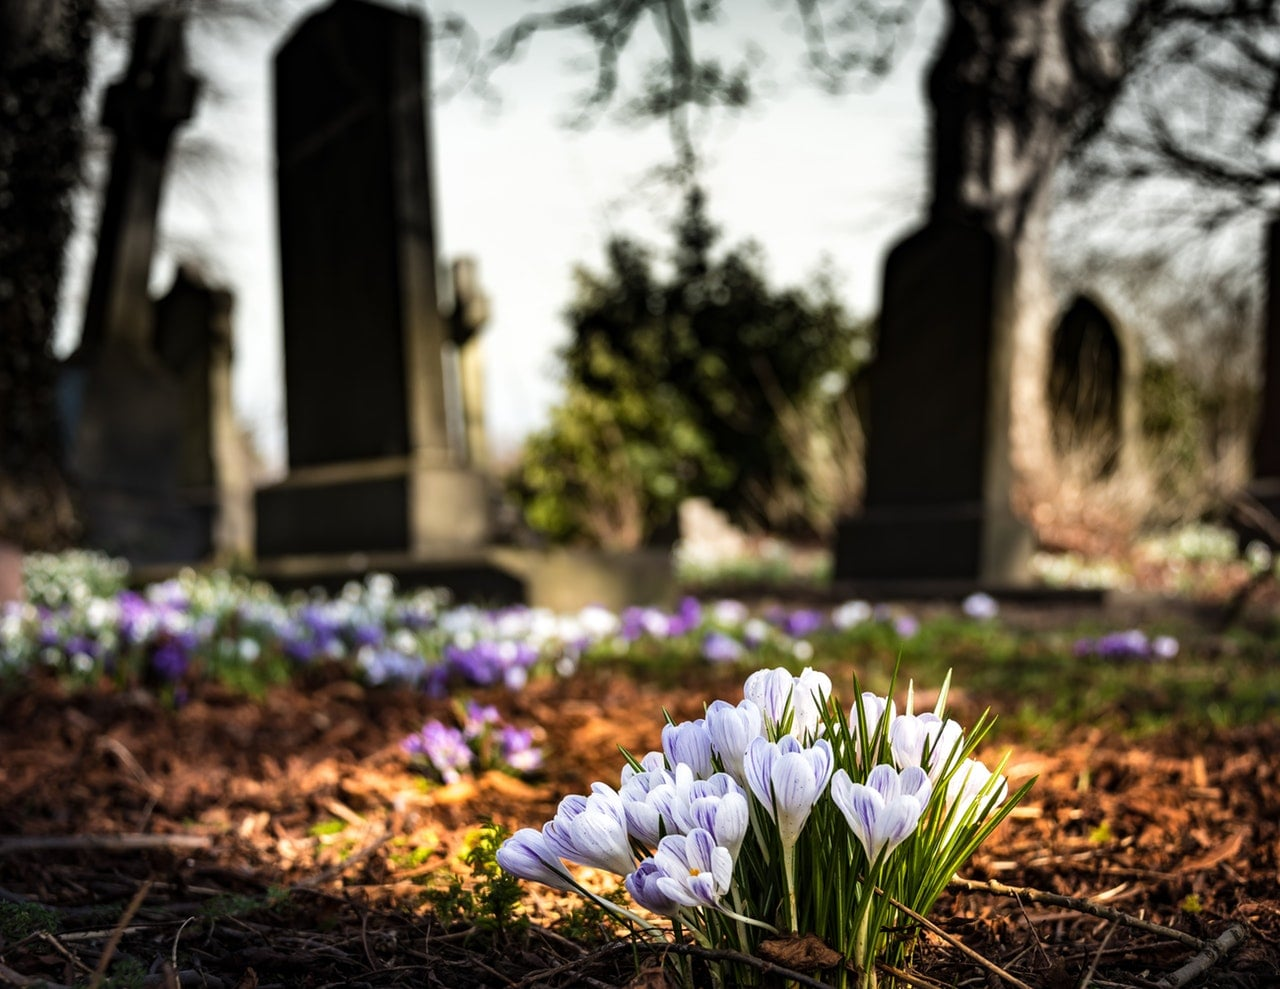 dealing with bereavement and funerals